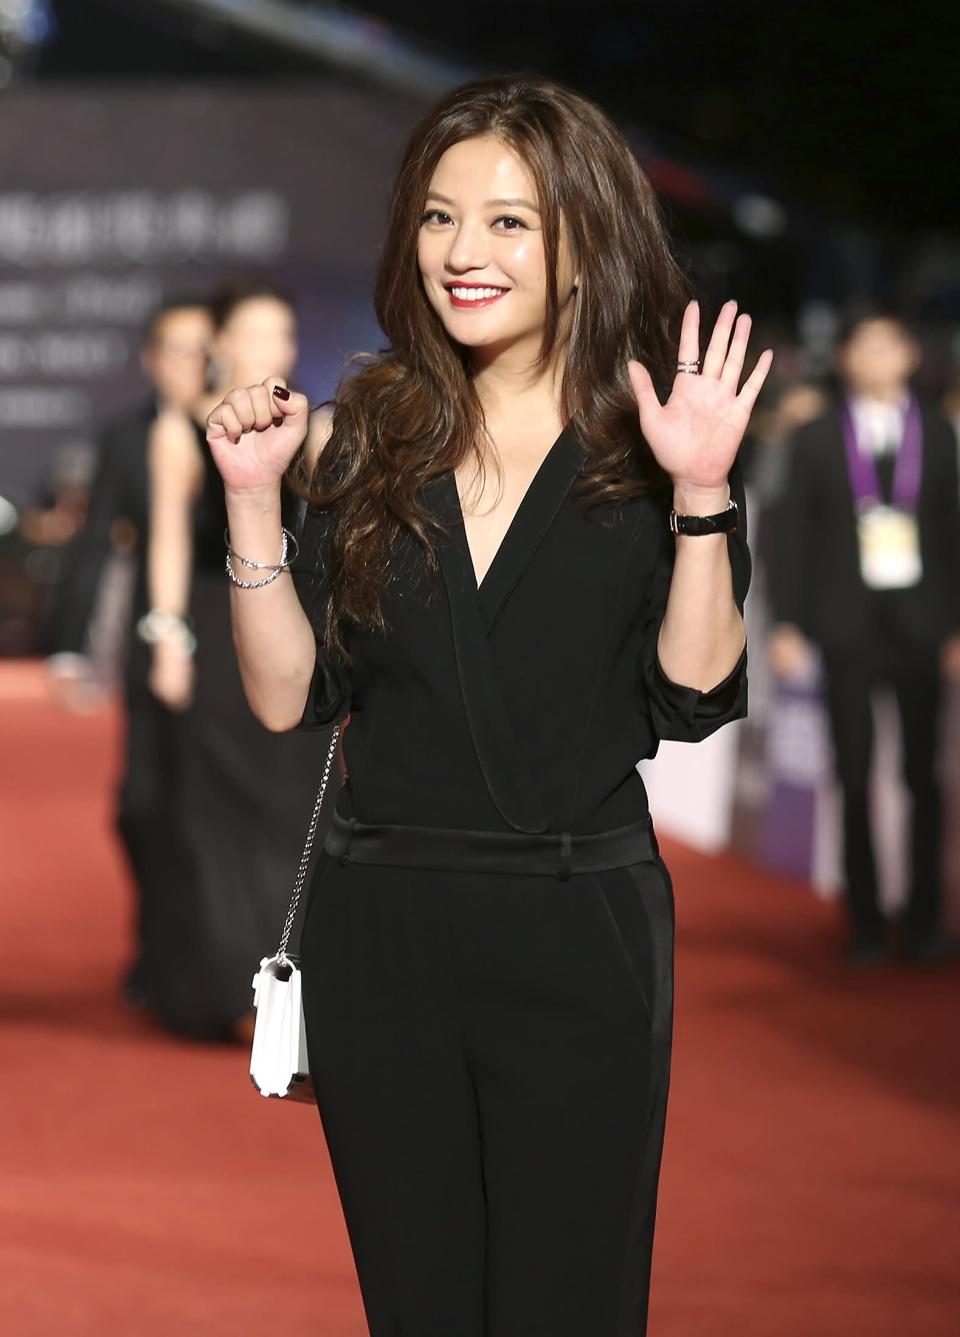 Chinese actress and director Vicky Zhao poses for photographers on the red carpet at the 50th Golden Horse Film Awards in Taipei November 23, 2013. REUTERS/Patrick Lin (TAIWAN - Tags: ENTERTAINMENT)